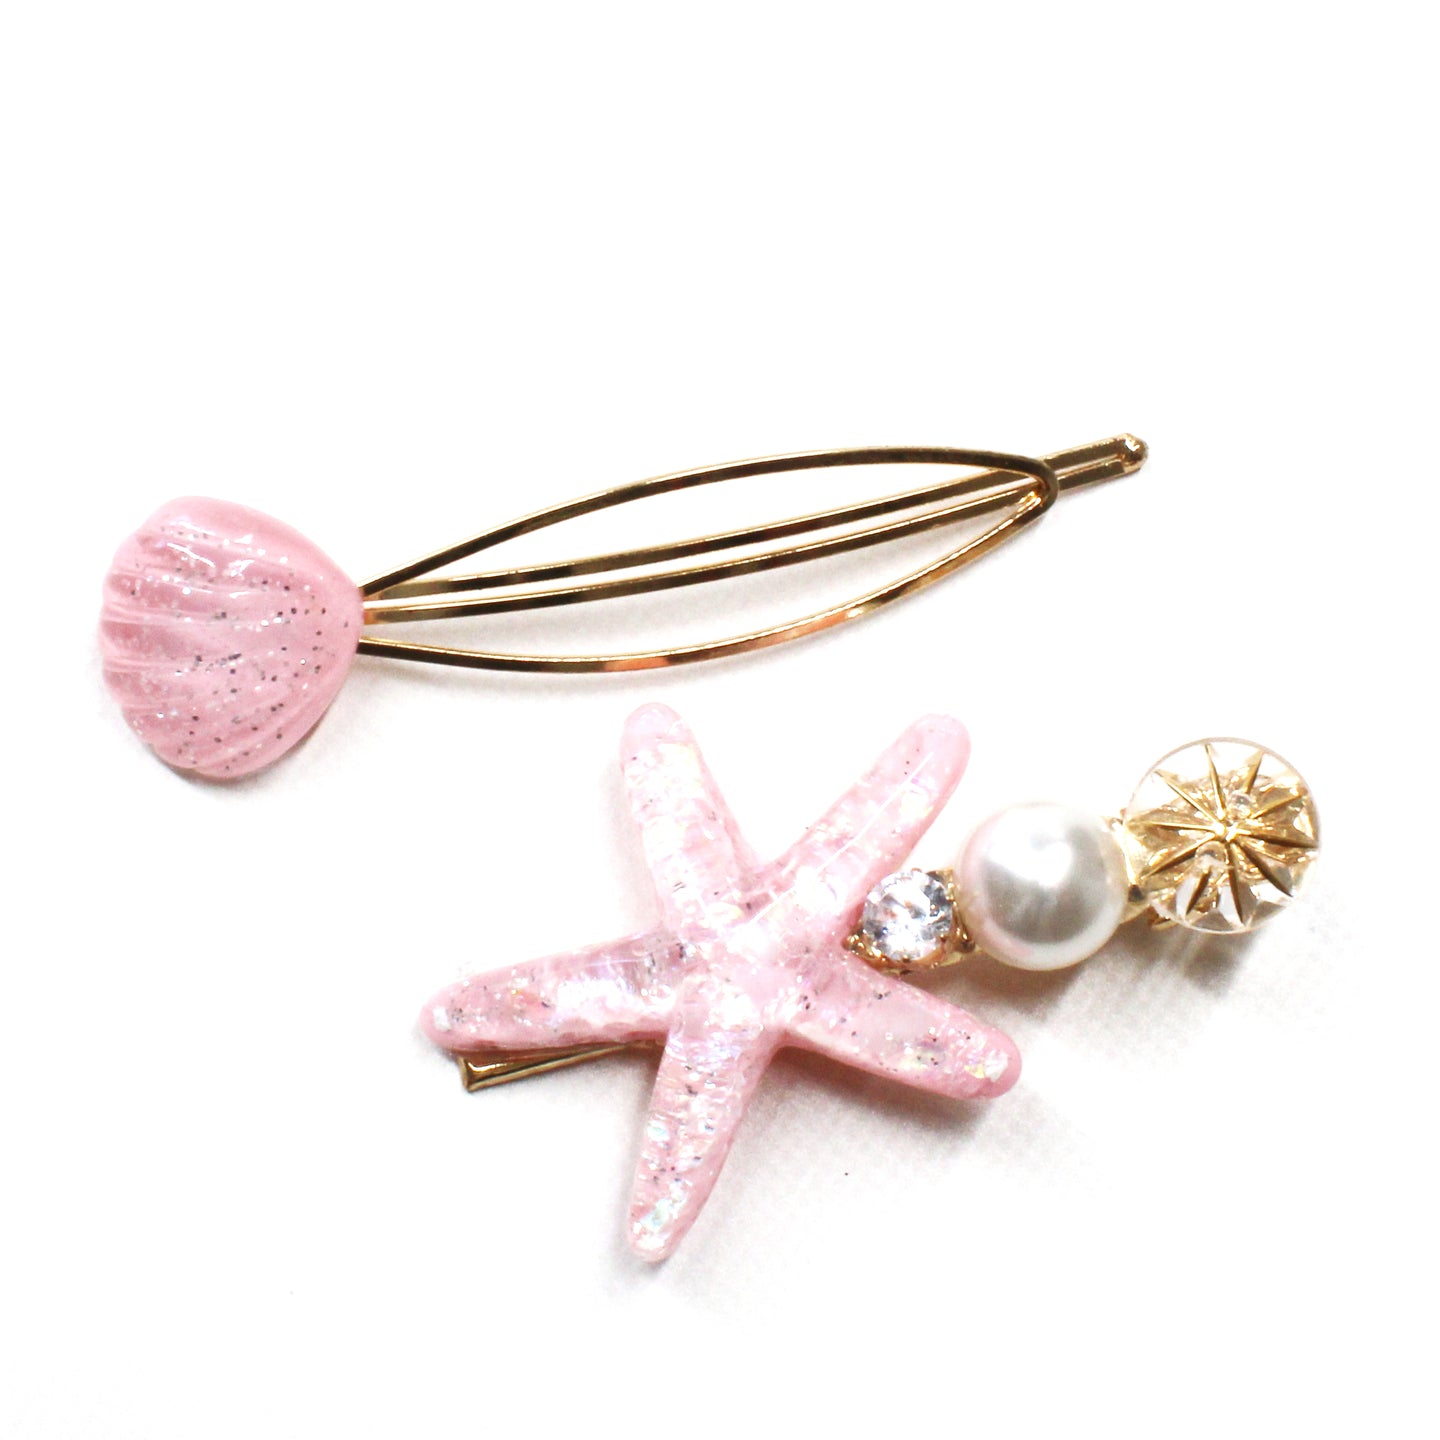 Aquamarine Starfish and Shell Slider Clip Set - Pink